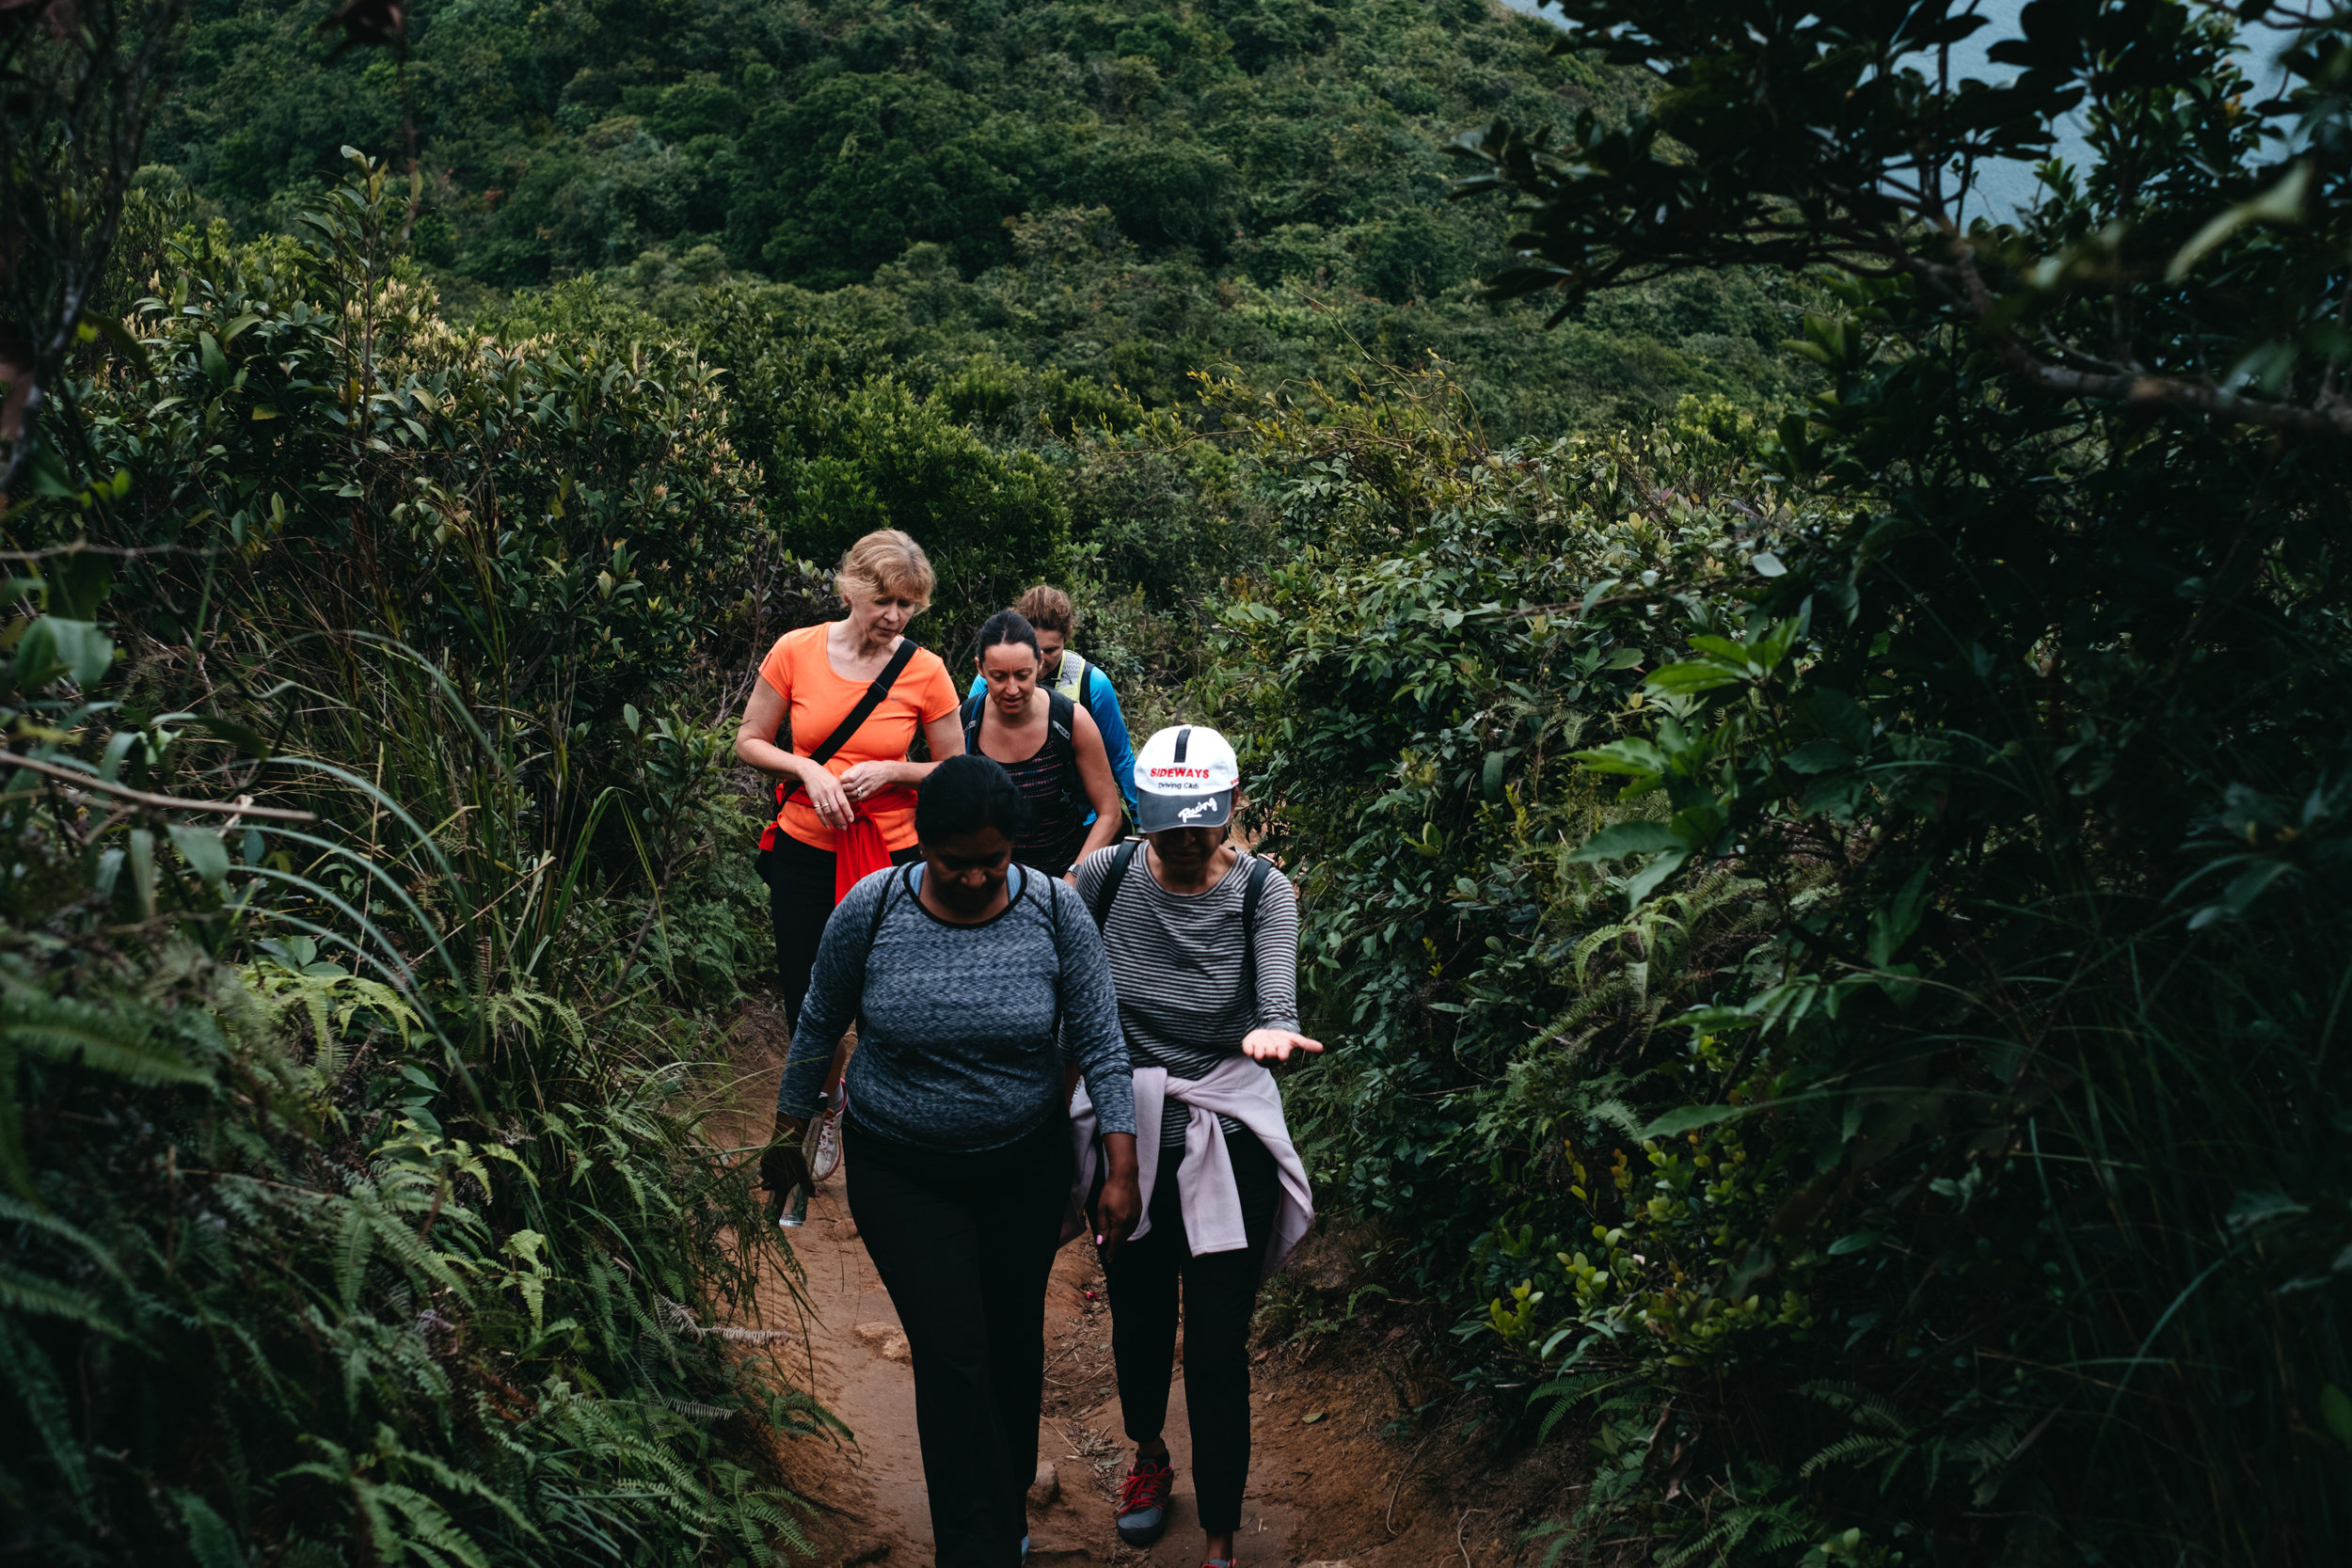 A group of women hike the Dragon's Back Trail in Hong Kong